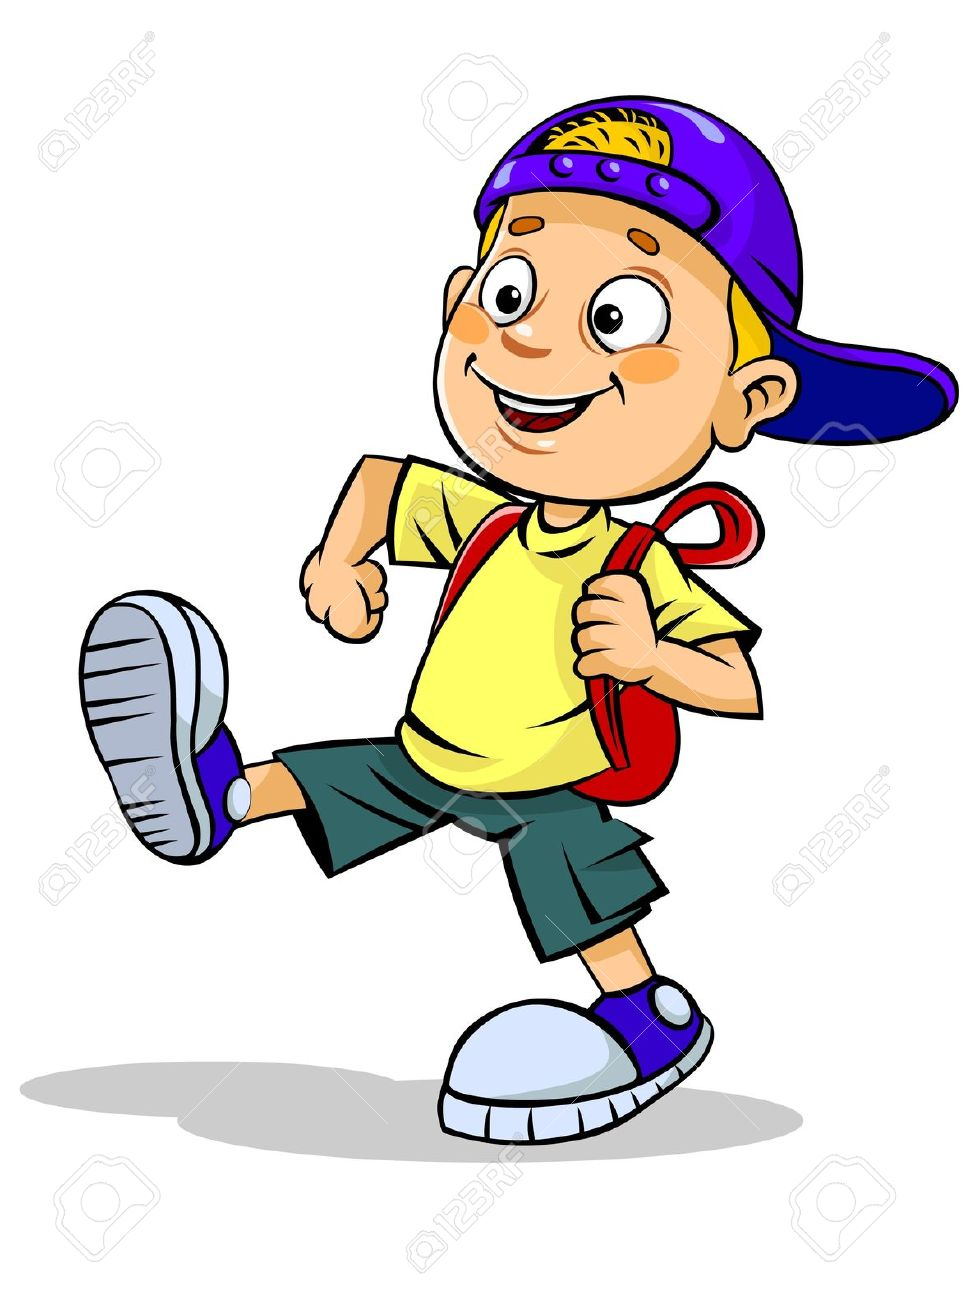 Cartoon Boy With Backpack Clipart.